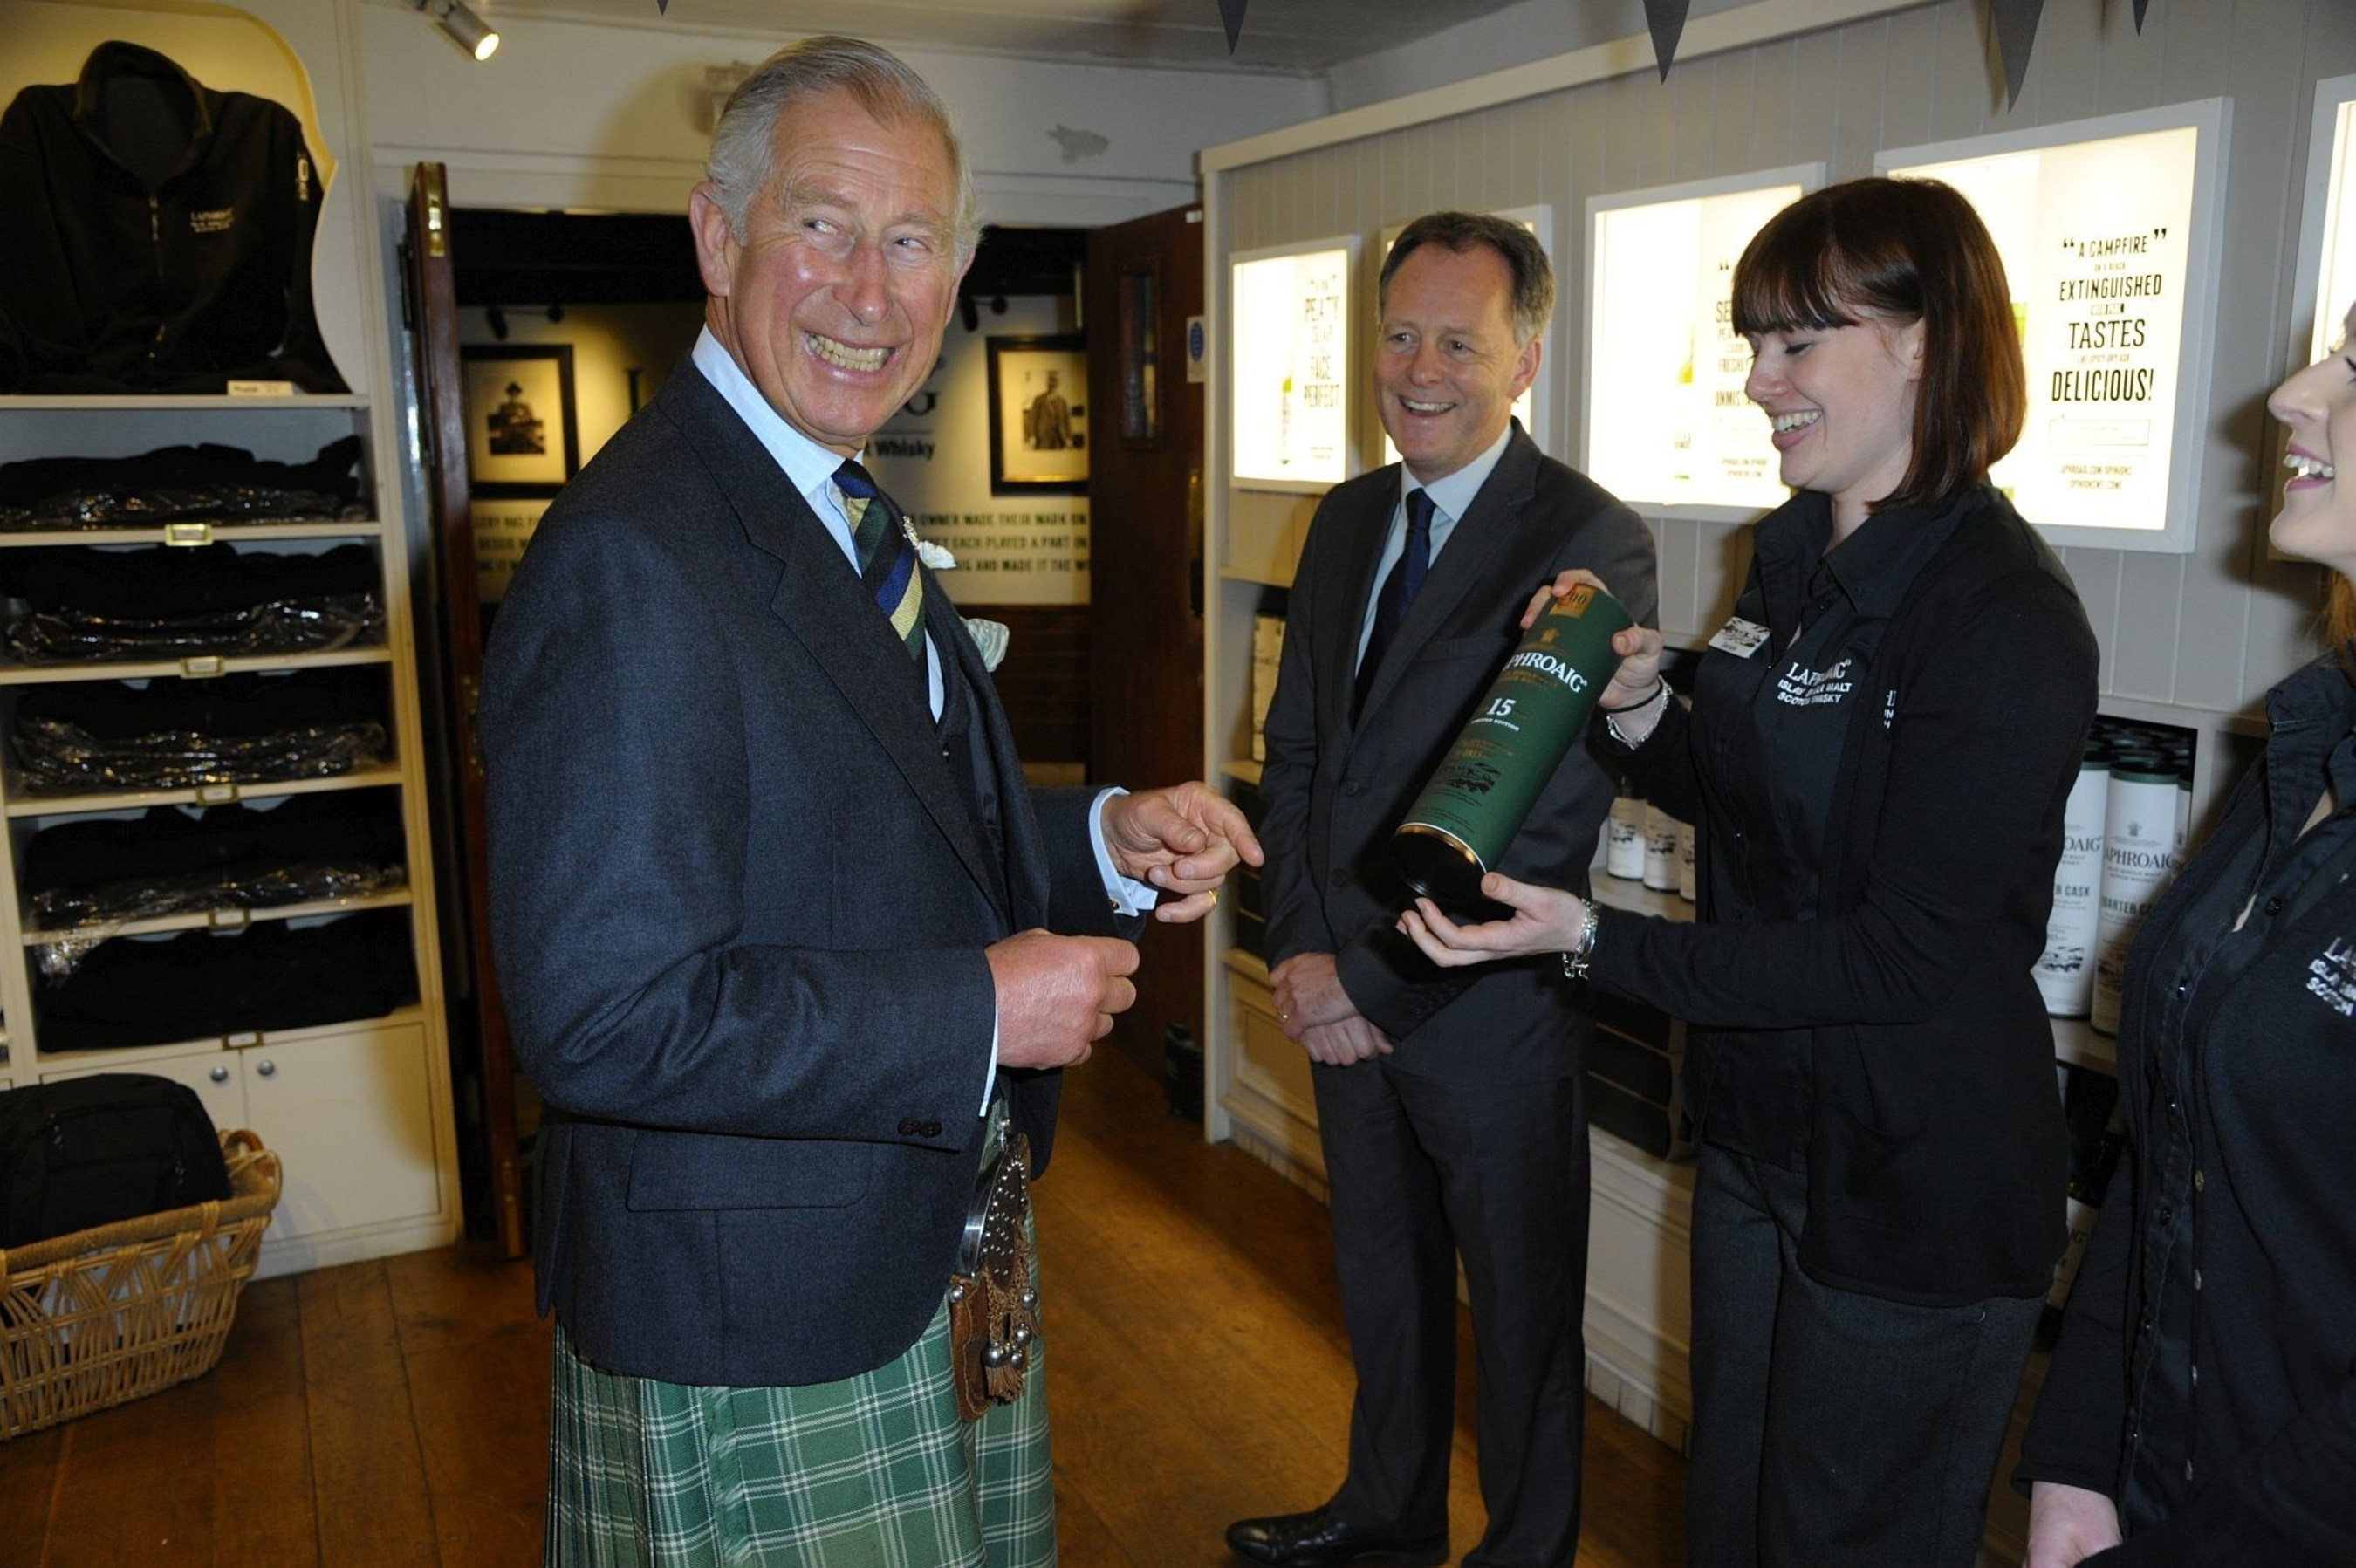 HRH Prince Charles, Duke of Rothesay, visited the Laphroaig distillery on Islay in the Inner Hebrides this morning to celebrate the brand's 200th anniversary. Laphroaig is the only single malt scotch whisky to bear the Royal Warrant, a mark of recognition to those who supply goods or services to the Royal Households. (PRNewsFoto/Laphroaig) (PRNewsFoto/Laphroaig)